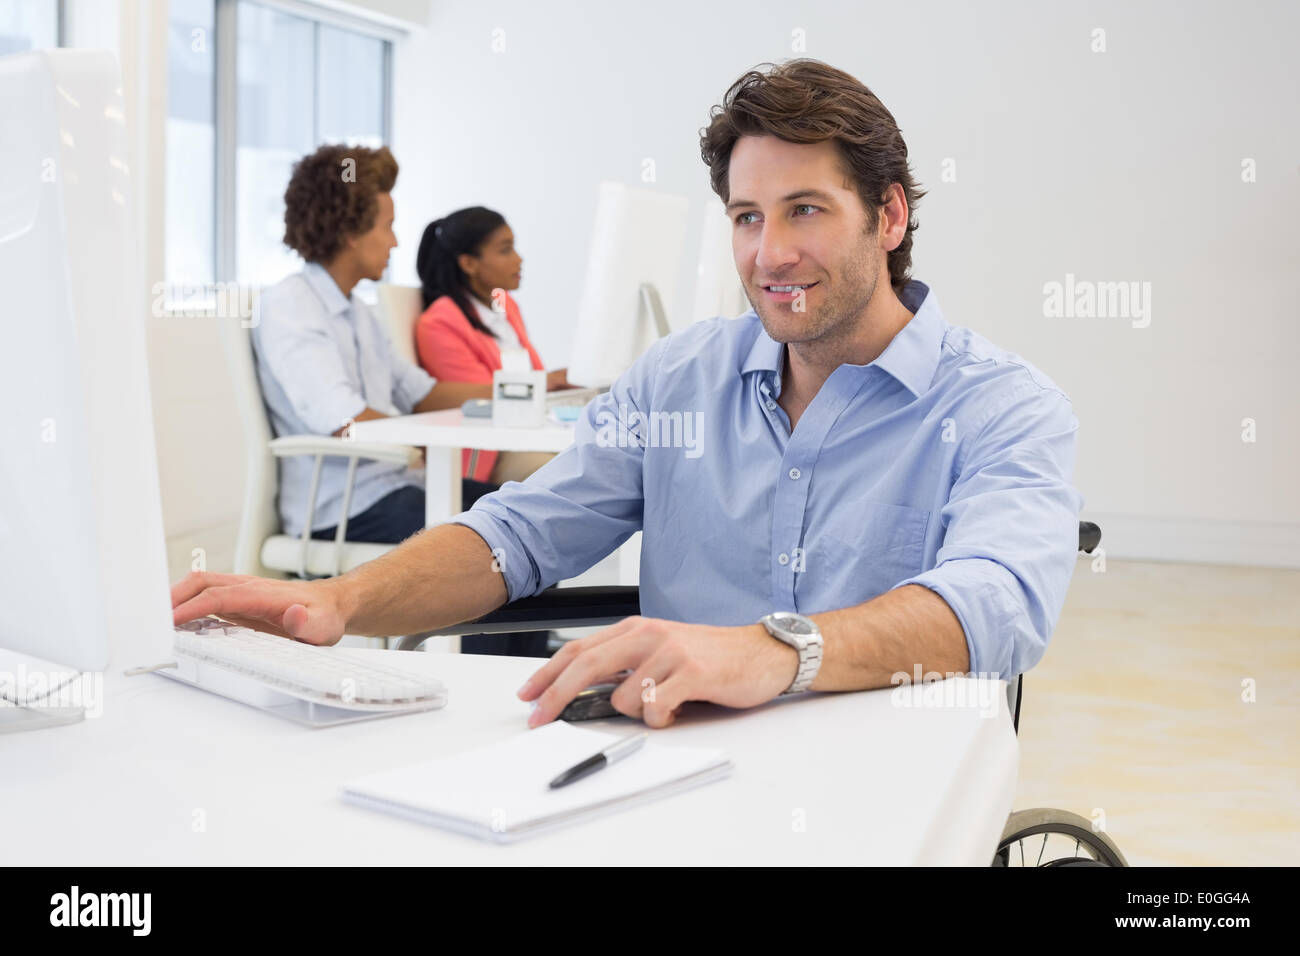 Businessman with disability works hard - Stock Image